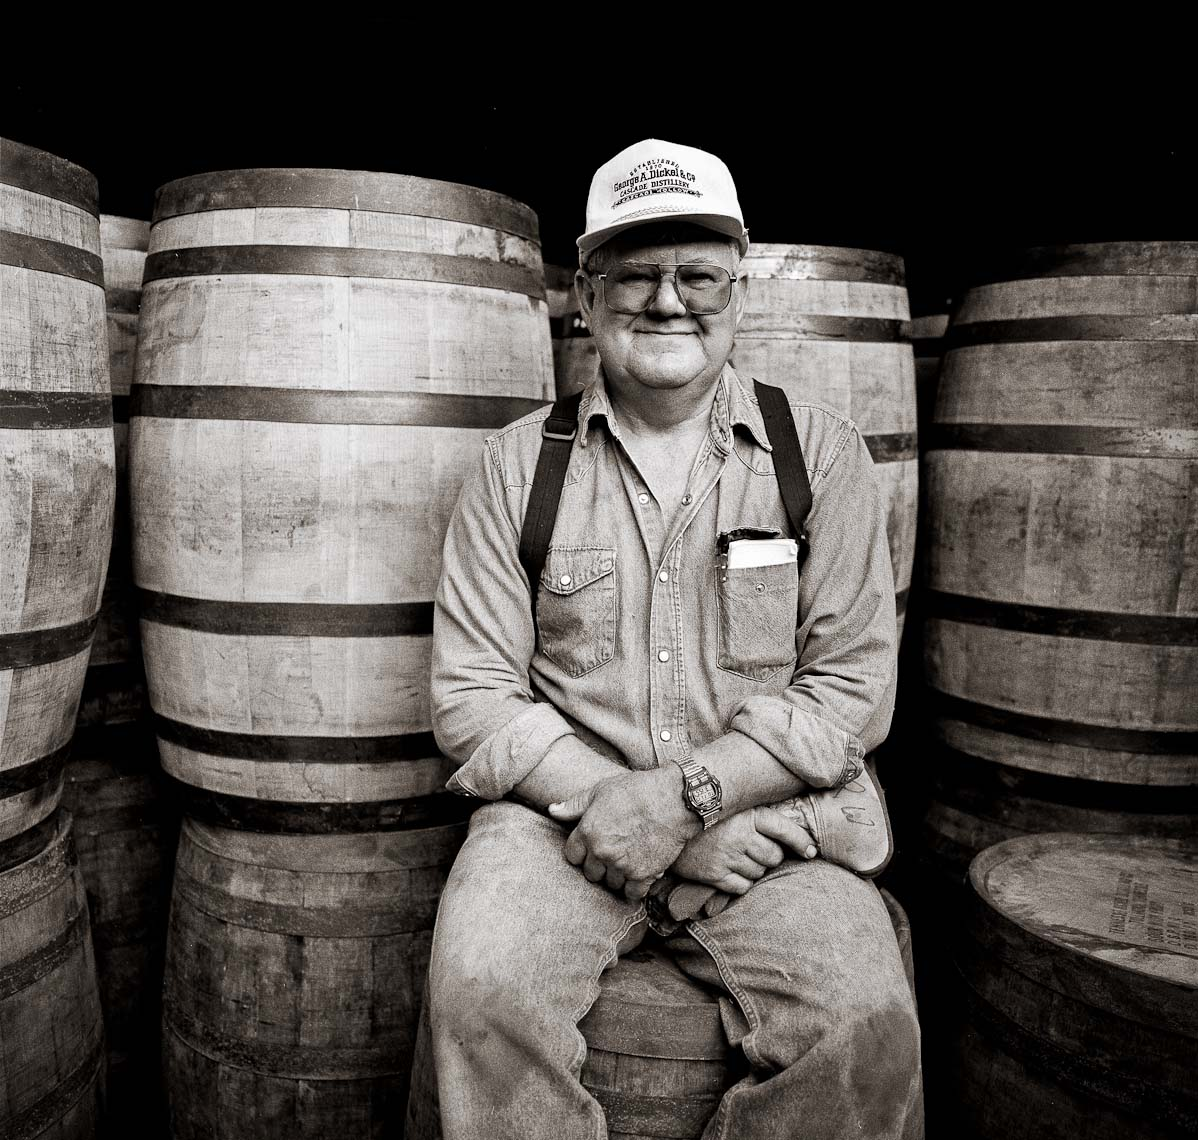 Dickel_barrel-guy-DUP.jpg